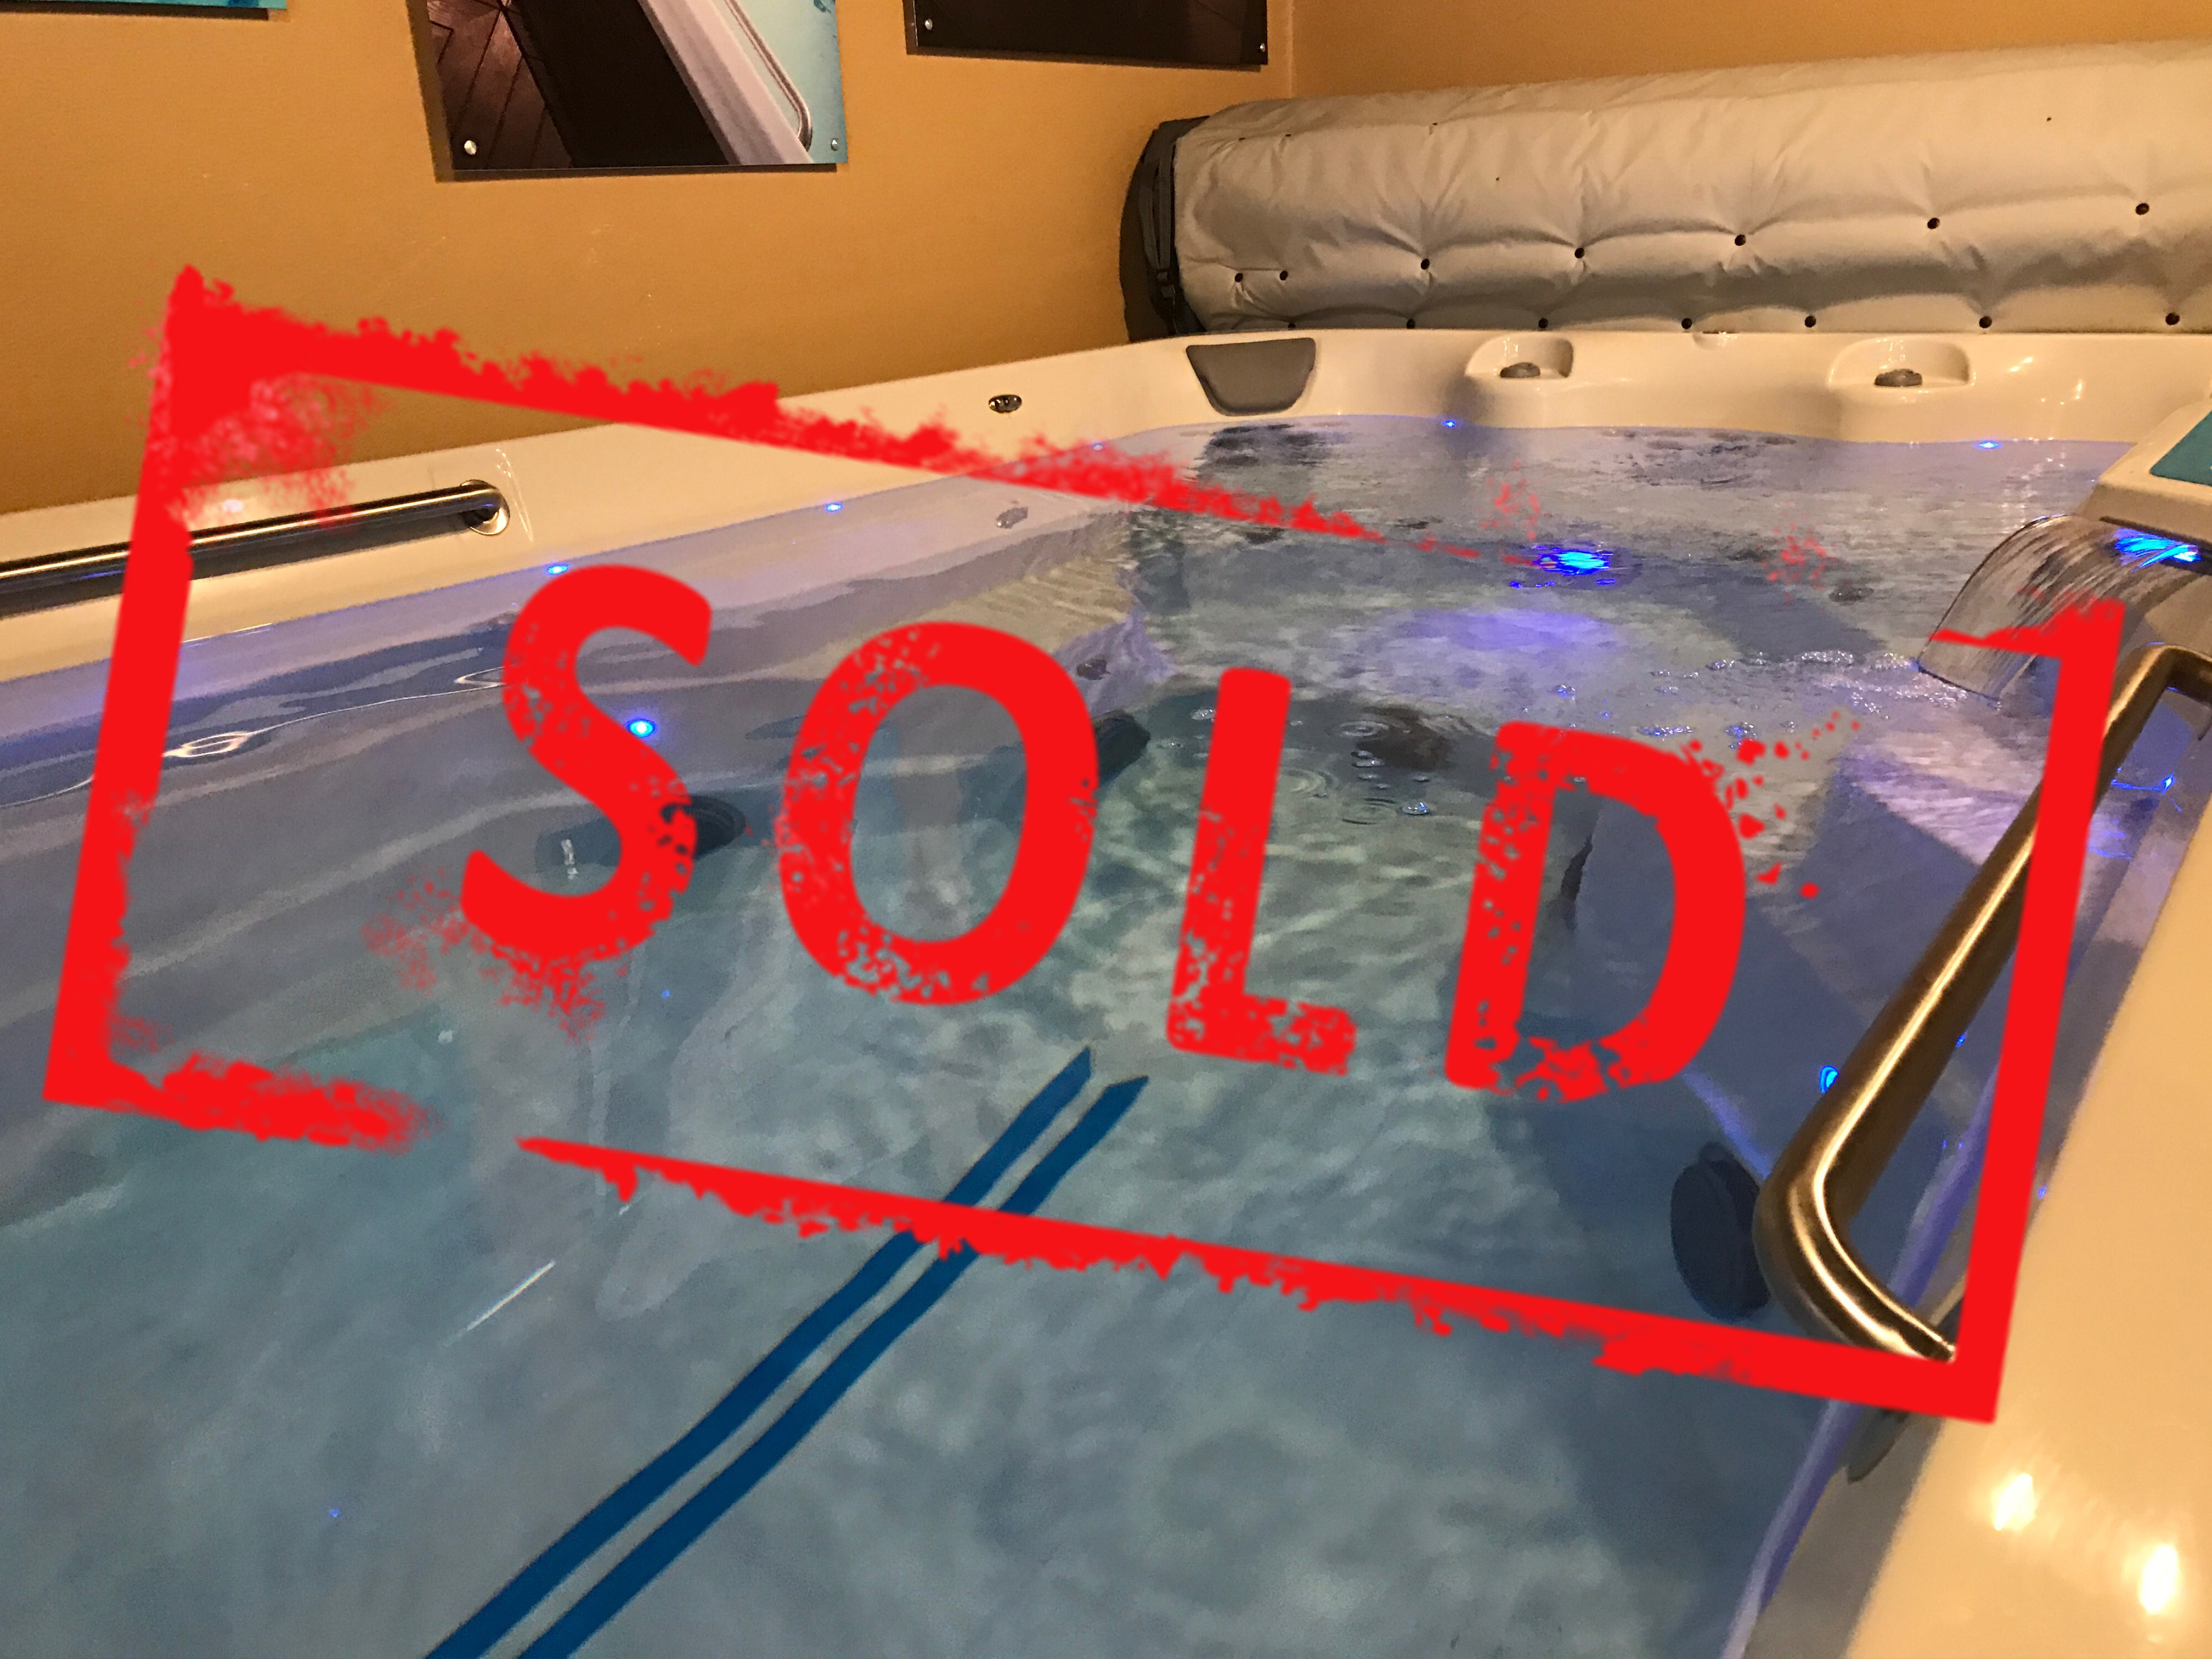 SOLD 2016 - X200 Endless Pools Fitness System Family Image